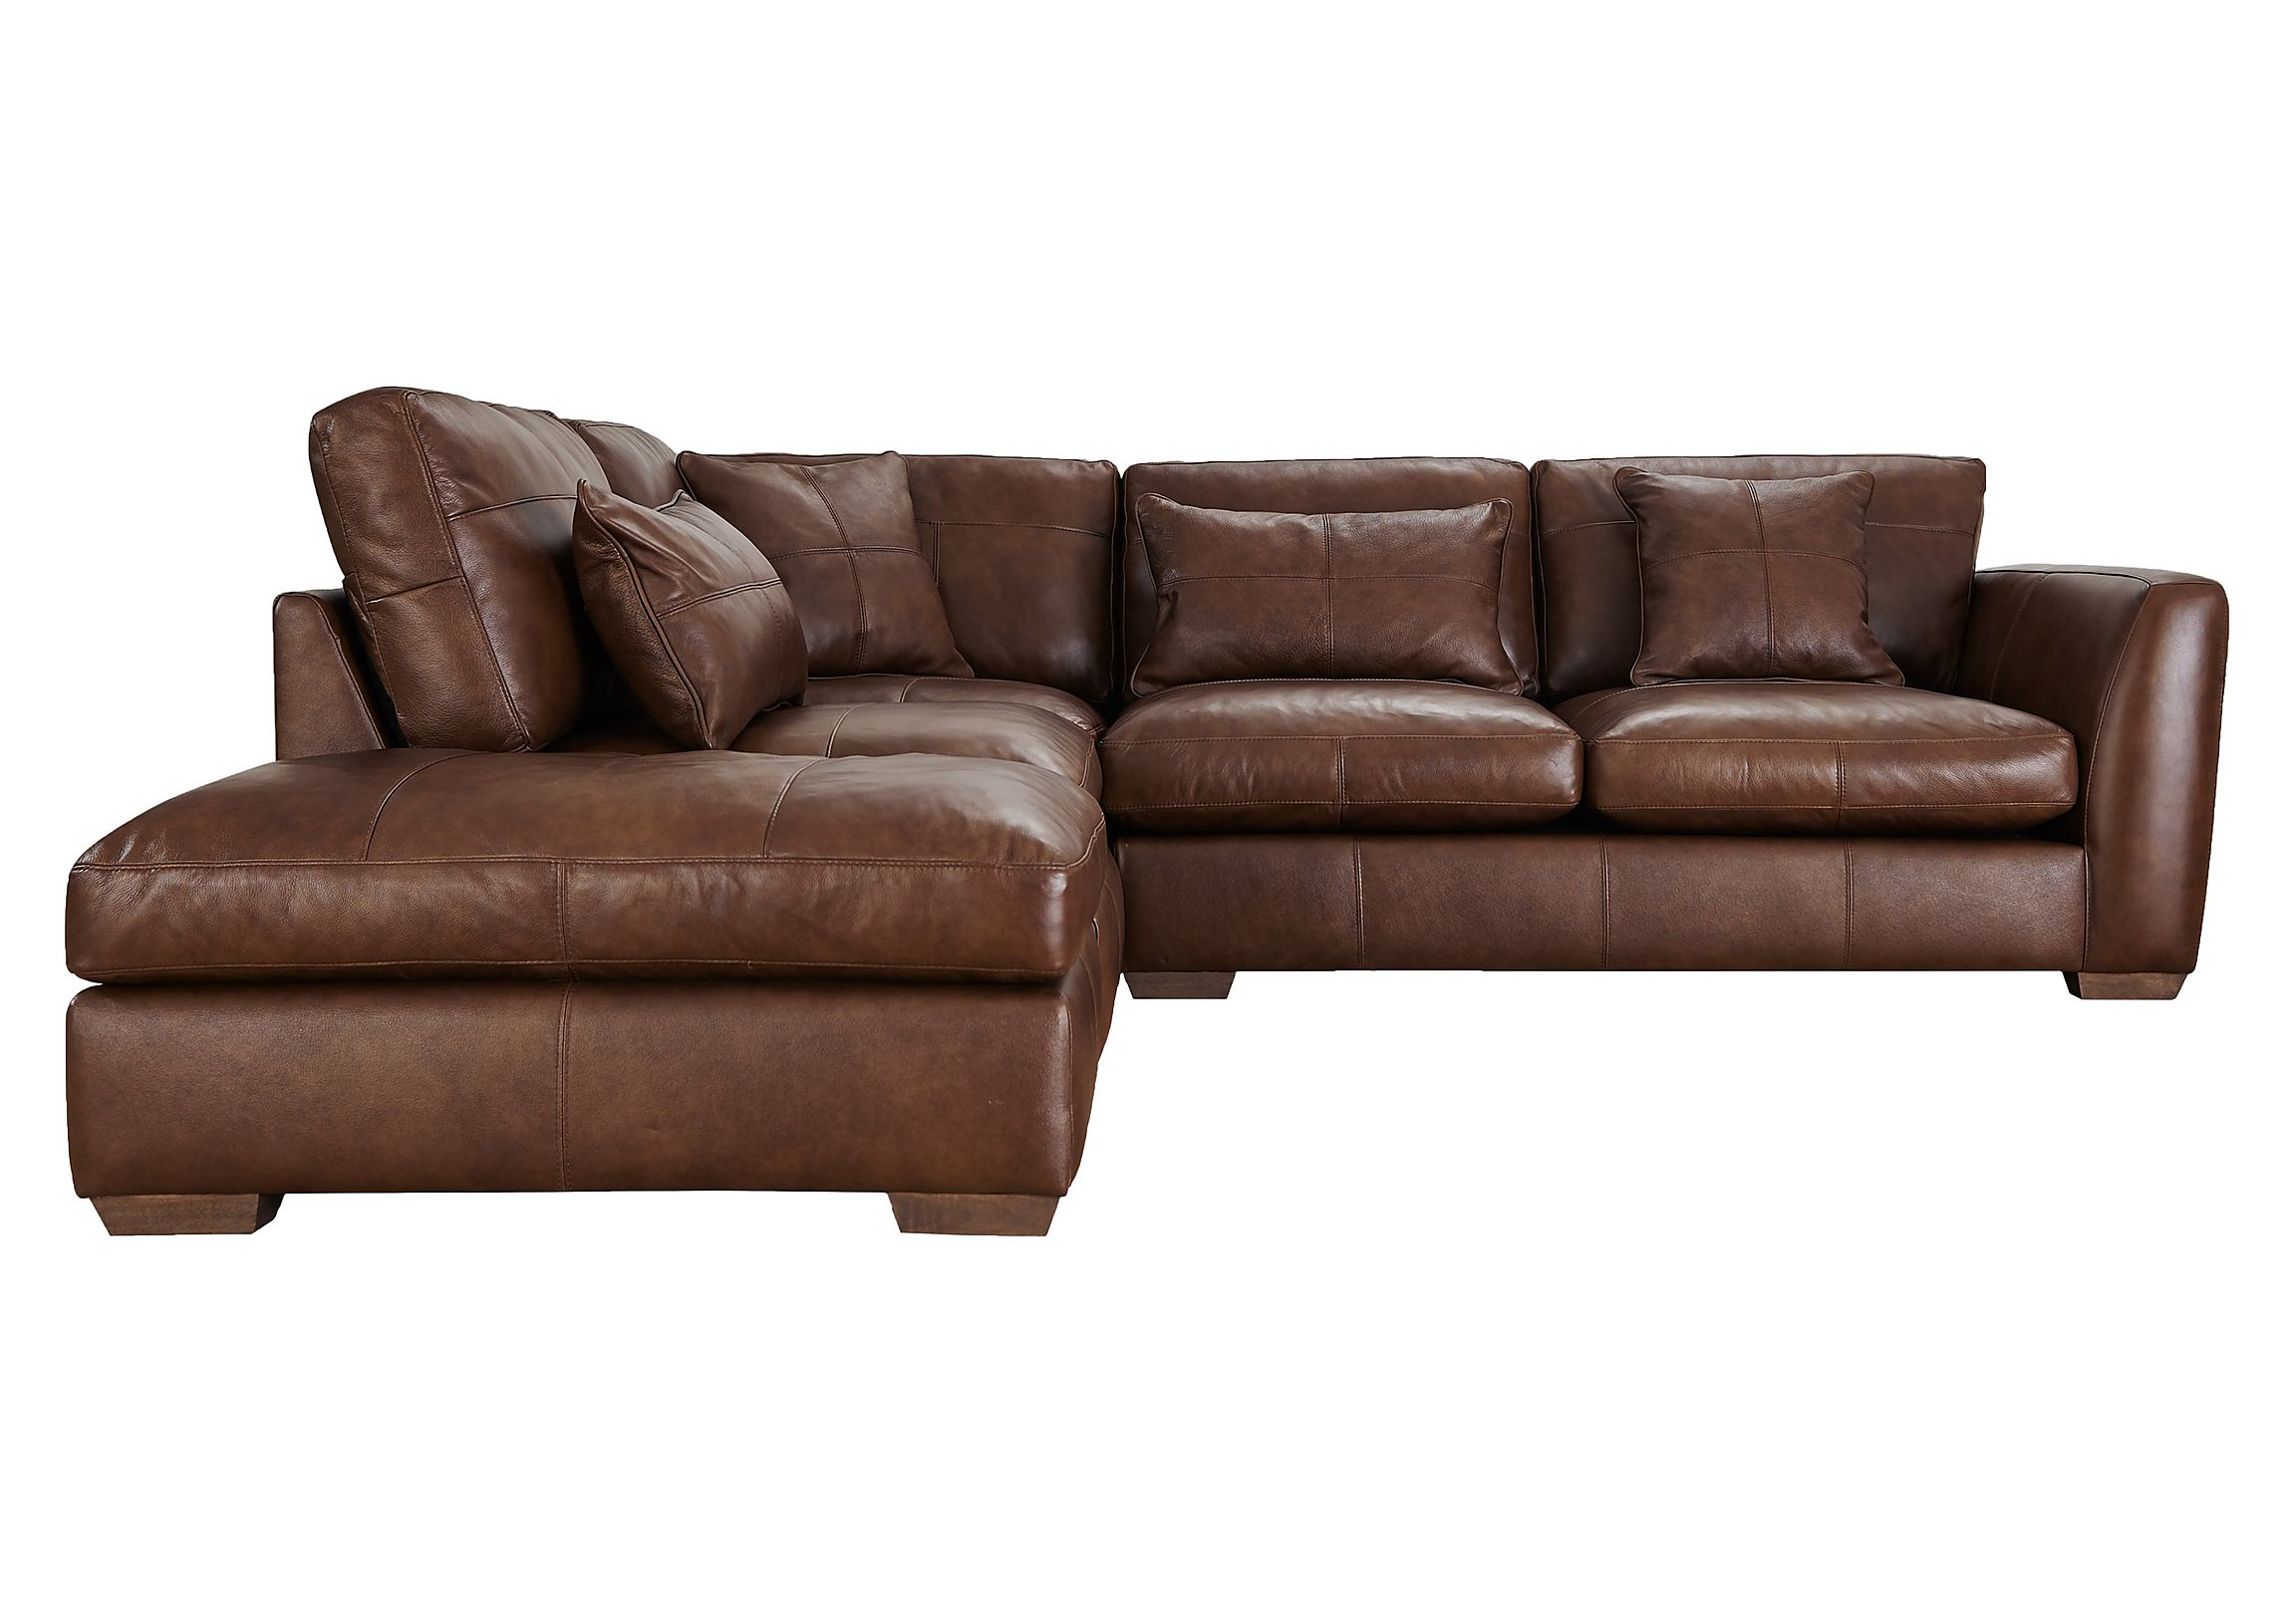 Small Brown Leather Corner Sofa Images